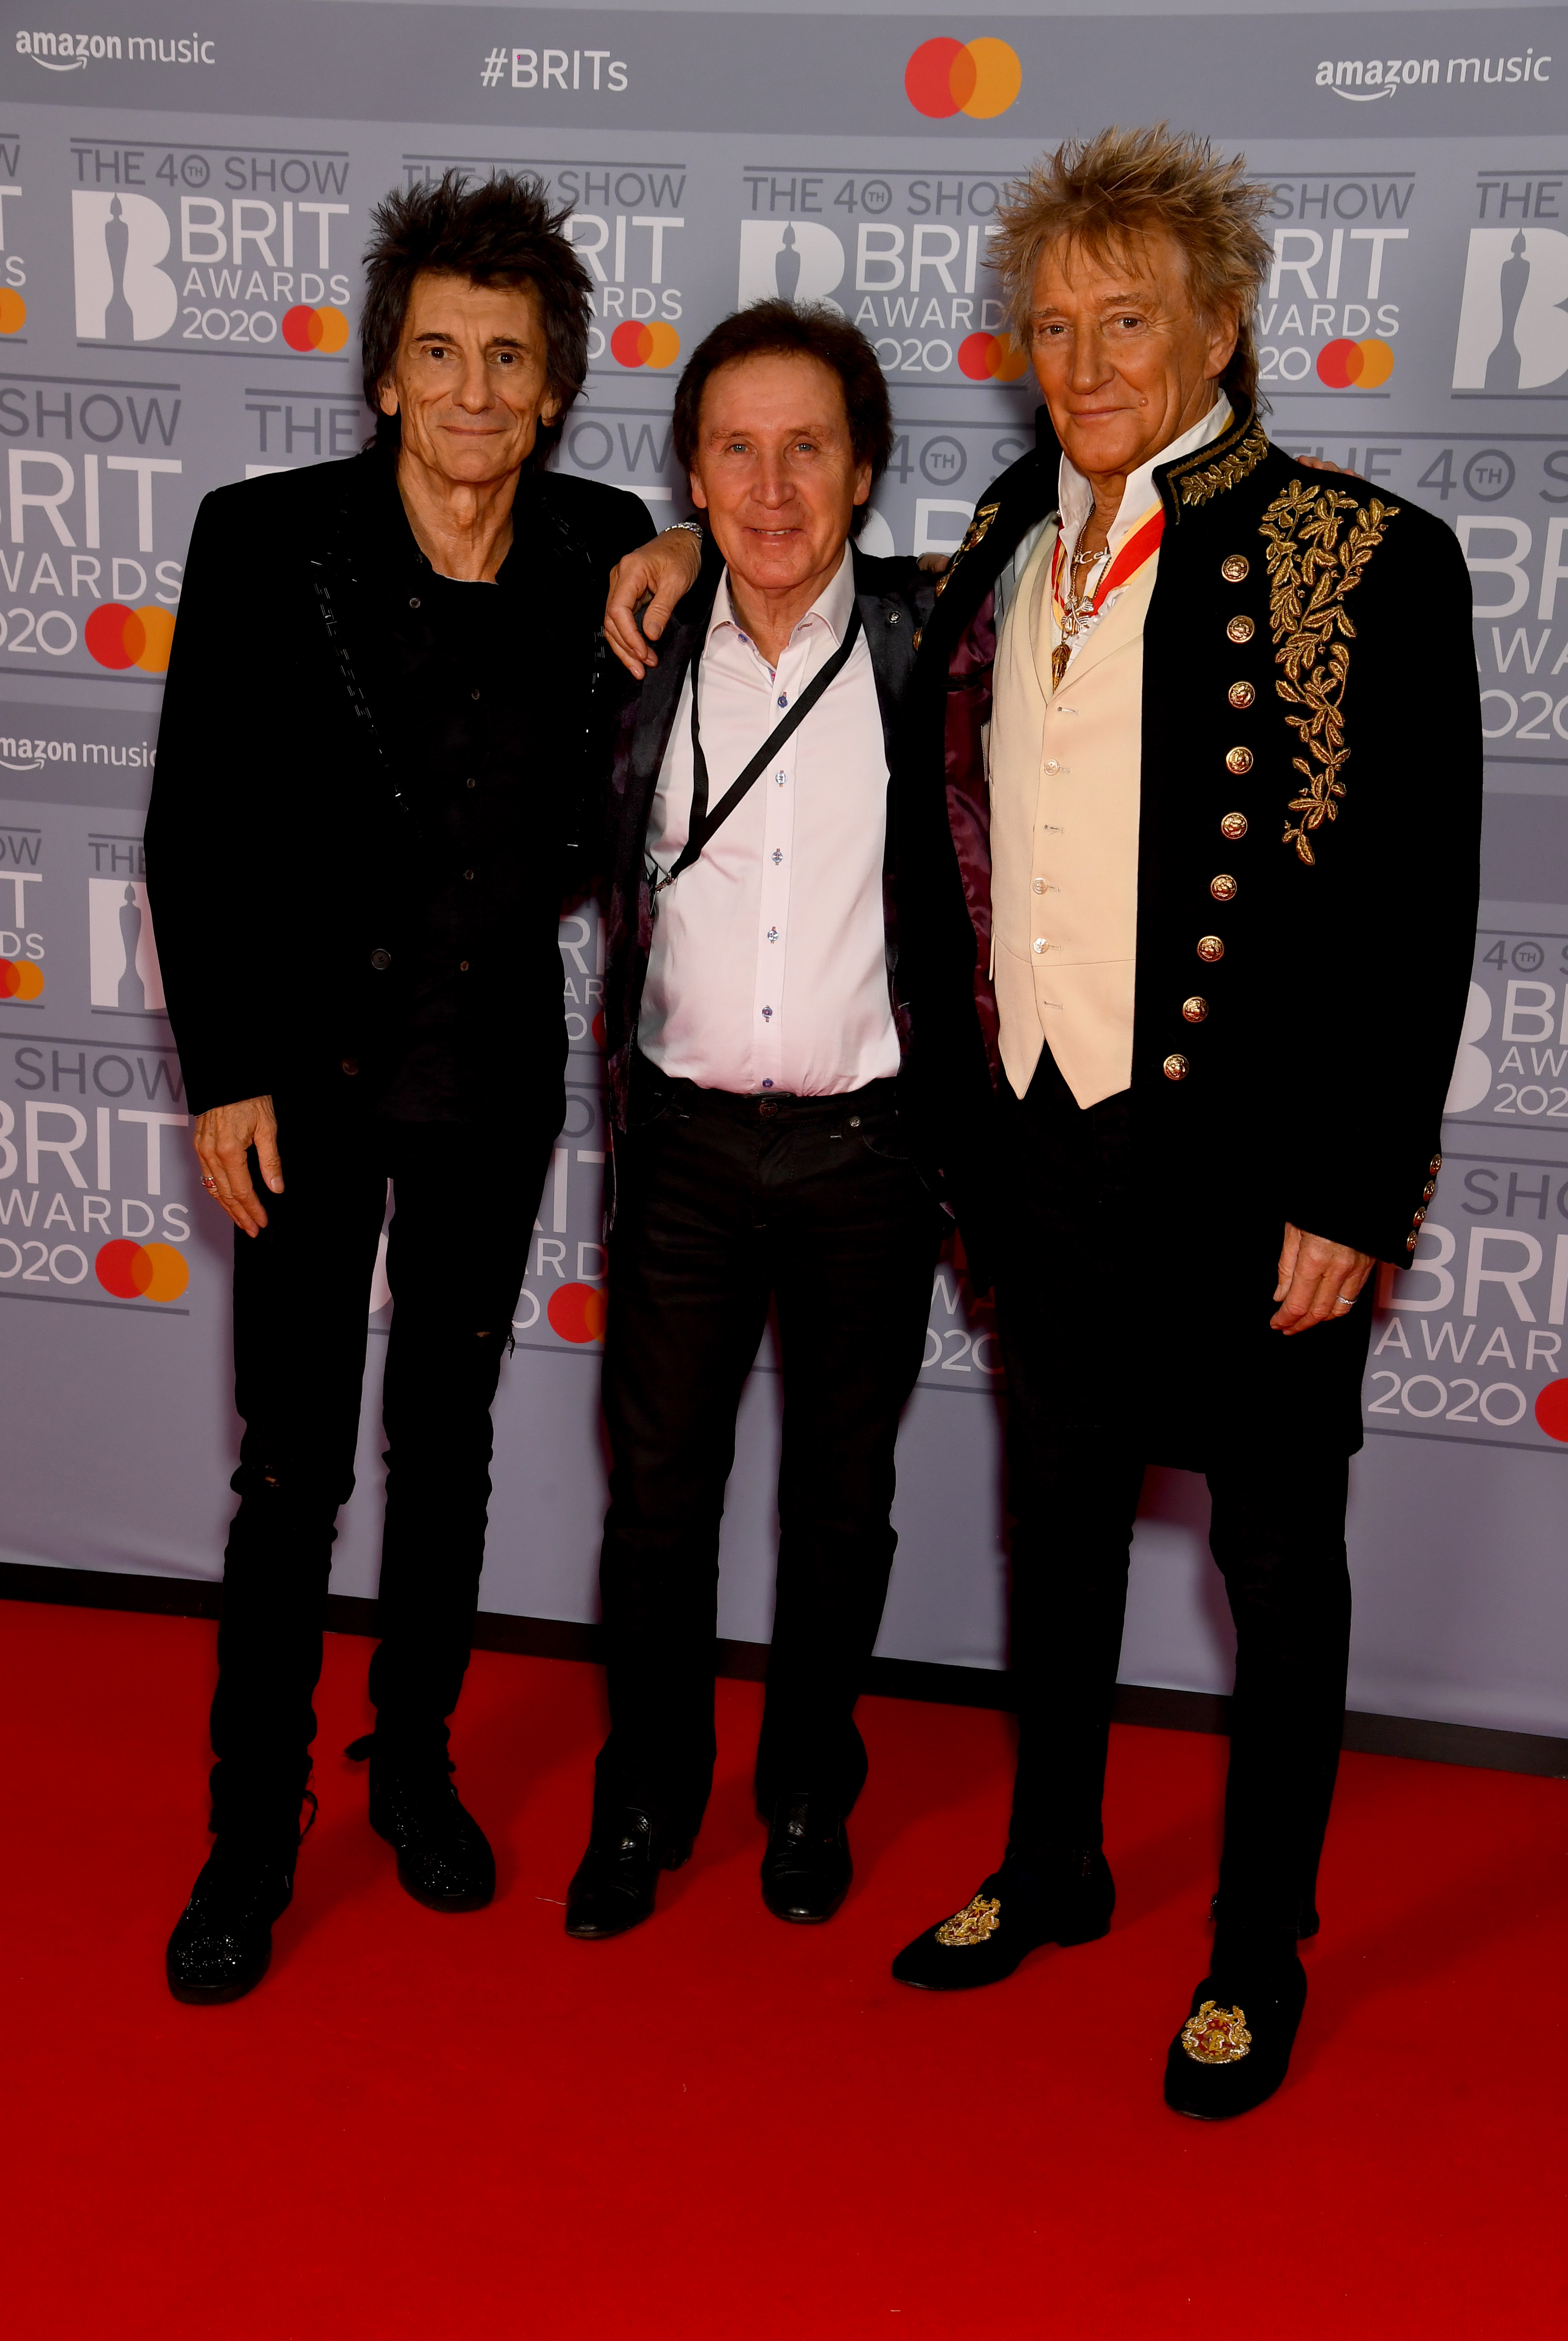 Ronnie Wood, Kenny Jones and Rod Stewart attend The BRIT Awards 2020 at The O2 Arena on February 18, 2020 in London, England. (Photo by Dave J Hogan/Getty Images)